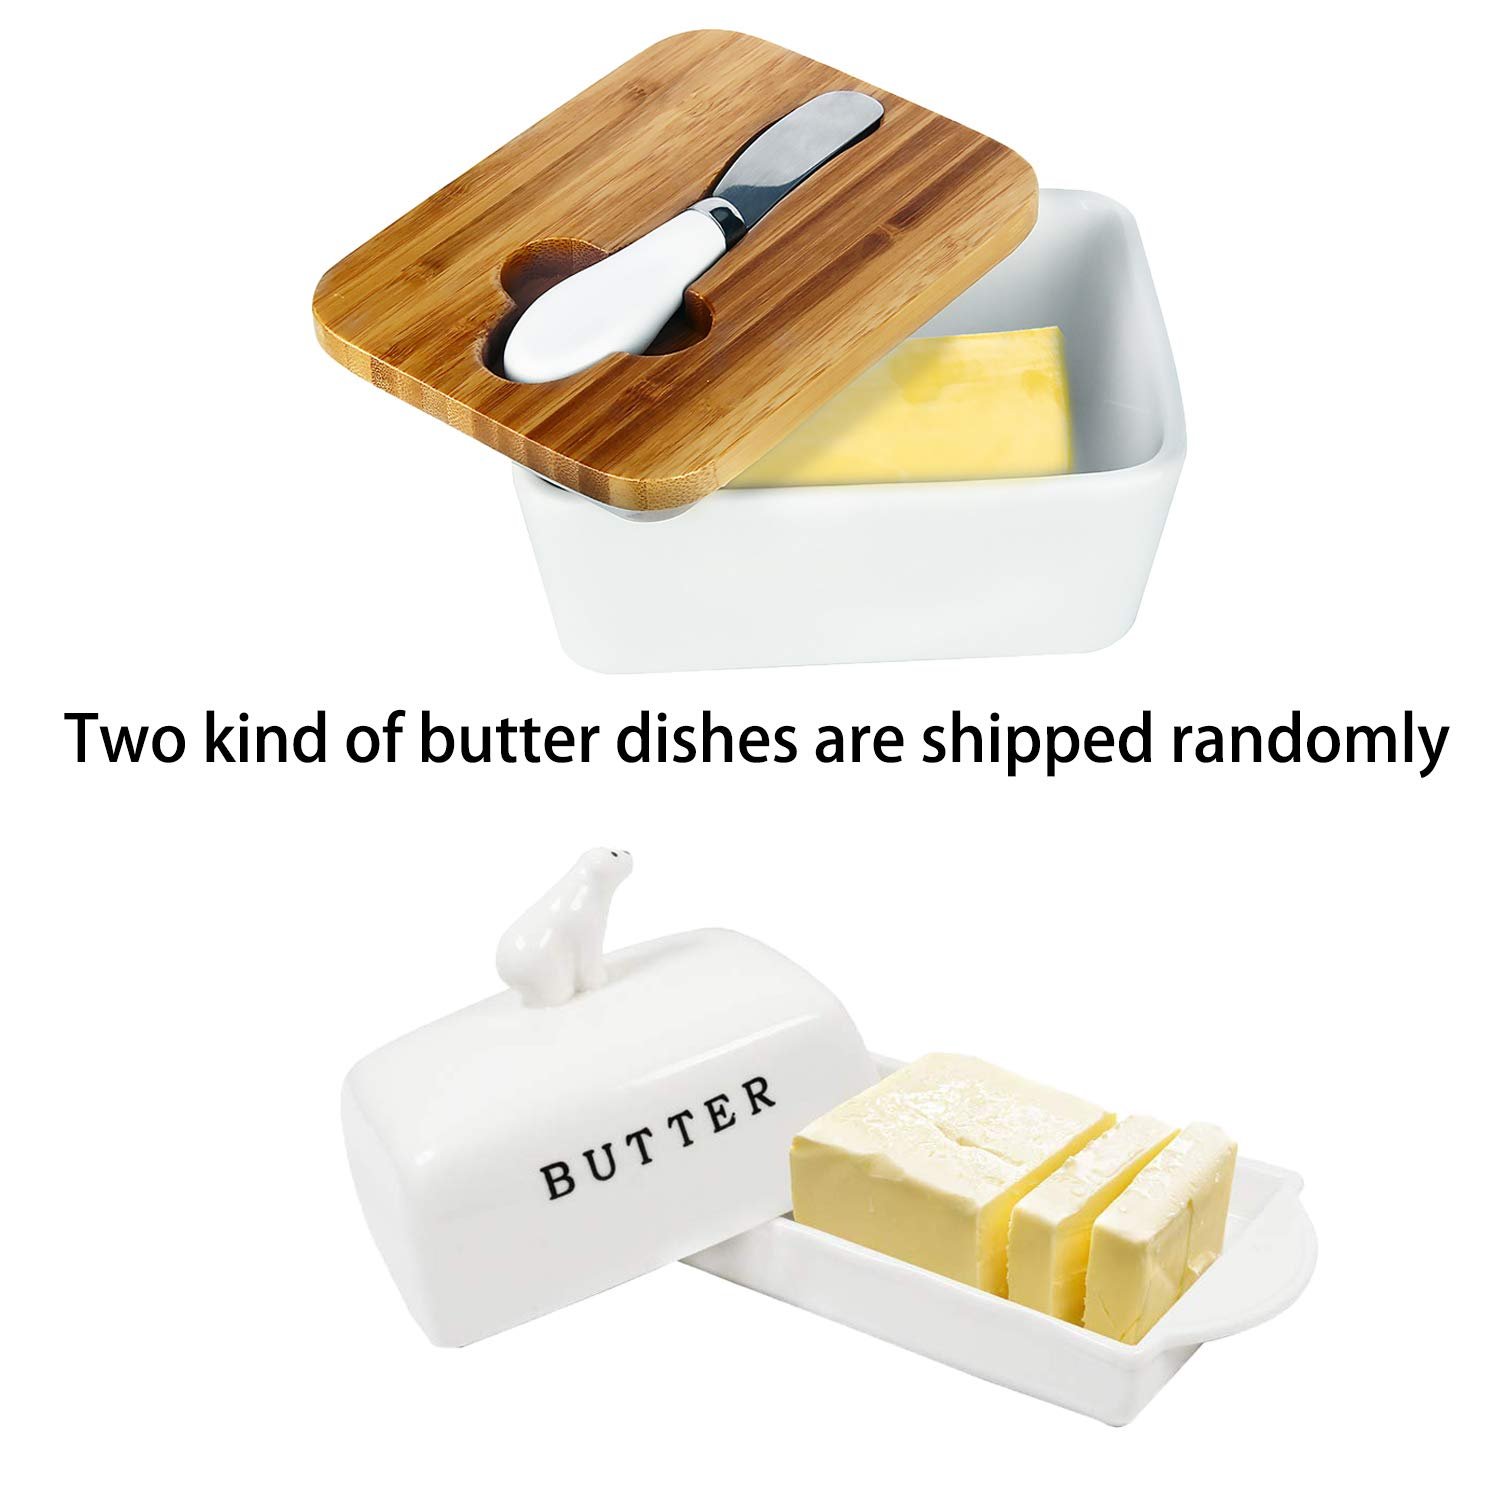 Butter Dish with Lid, OAMCEG Porcelain Butter Keeper with Airtight Cover Holds 2 Sticks of Butter - Includes Tray With Cover